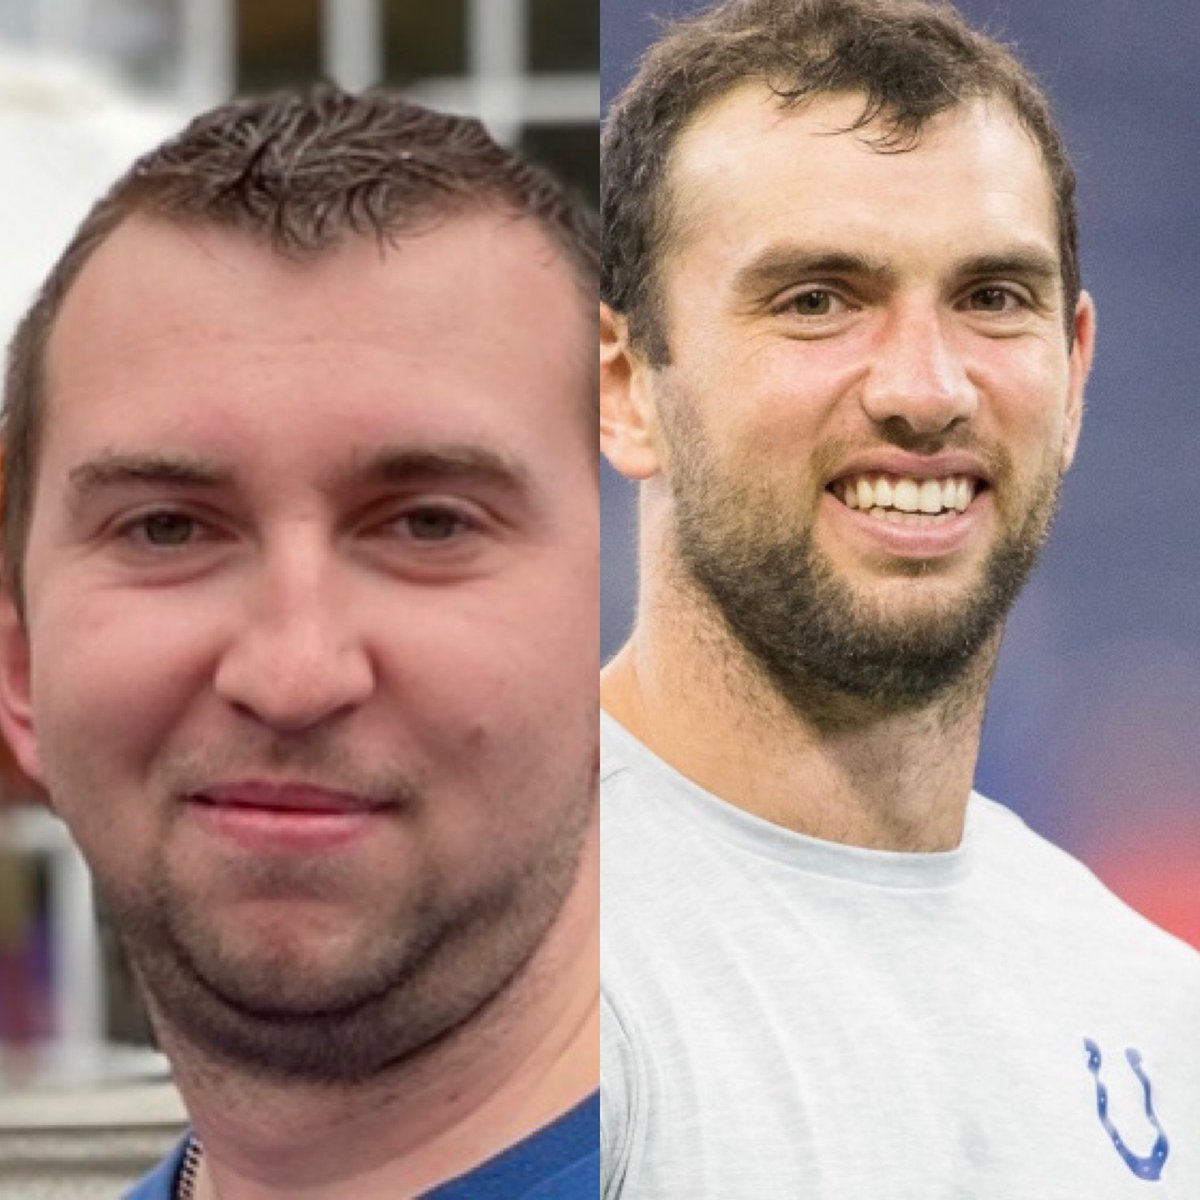 So for my #DoppelgängerChallenge. I've heard some people say I look like @Colts former QB #AndrewLuck. Let me know what y'all think.